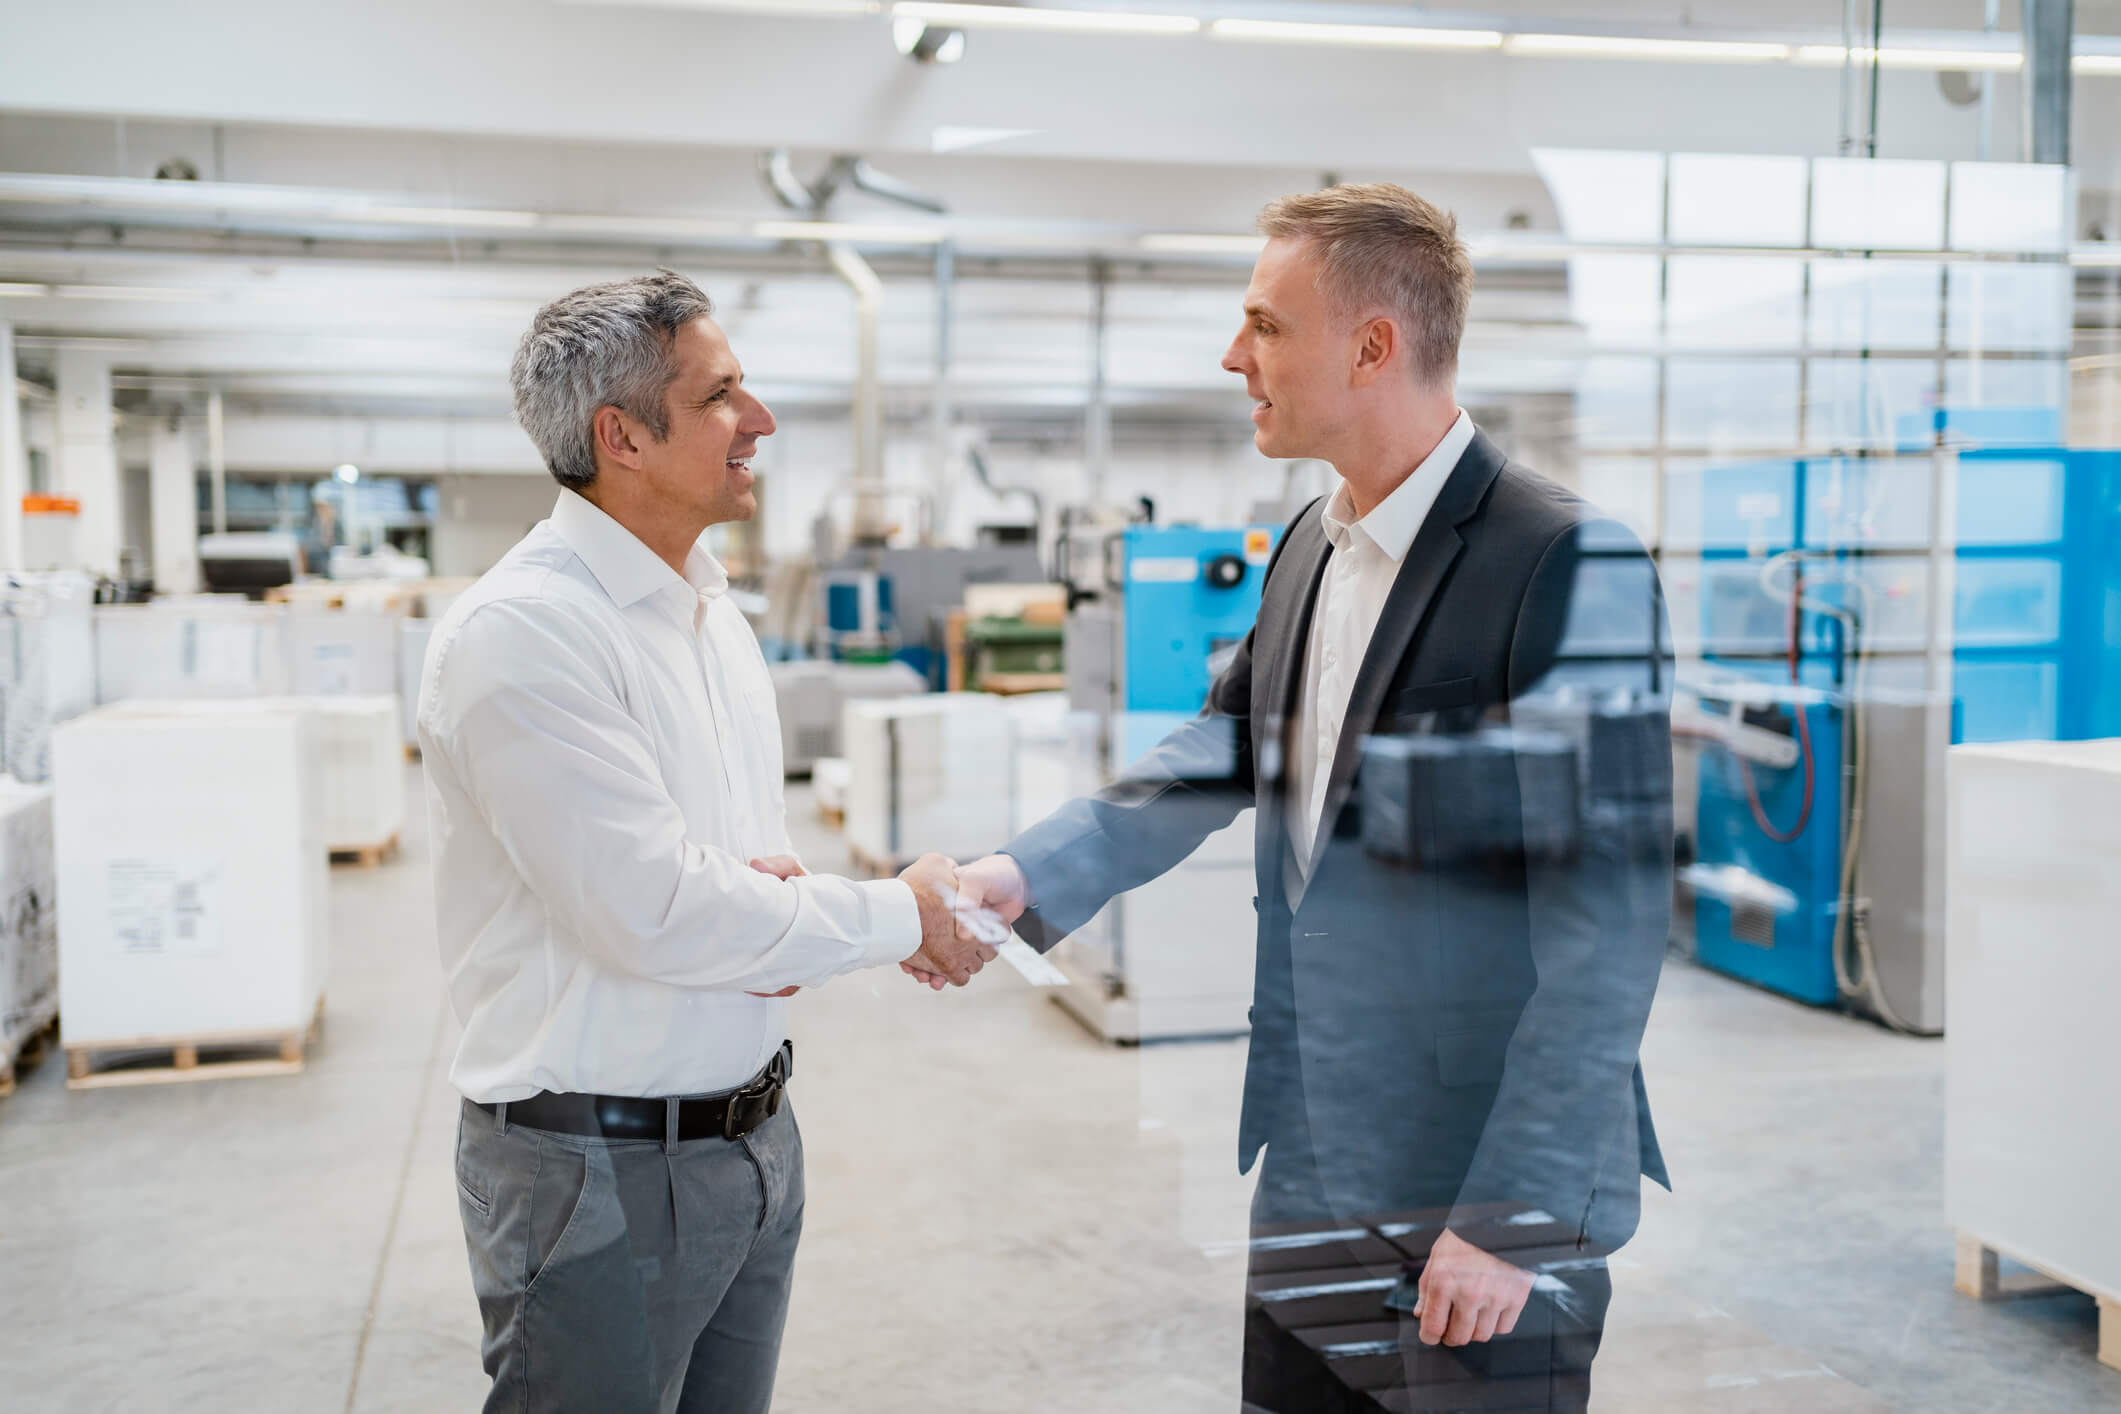 Two business men in manufacturing shaking hands